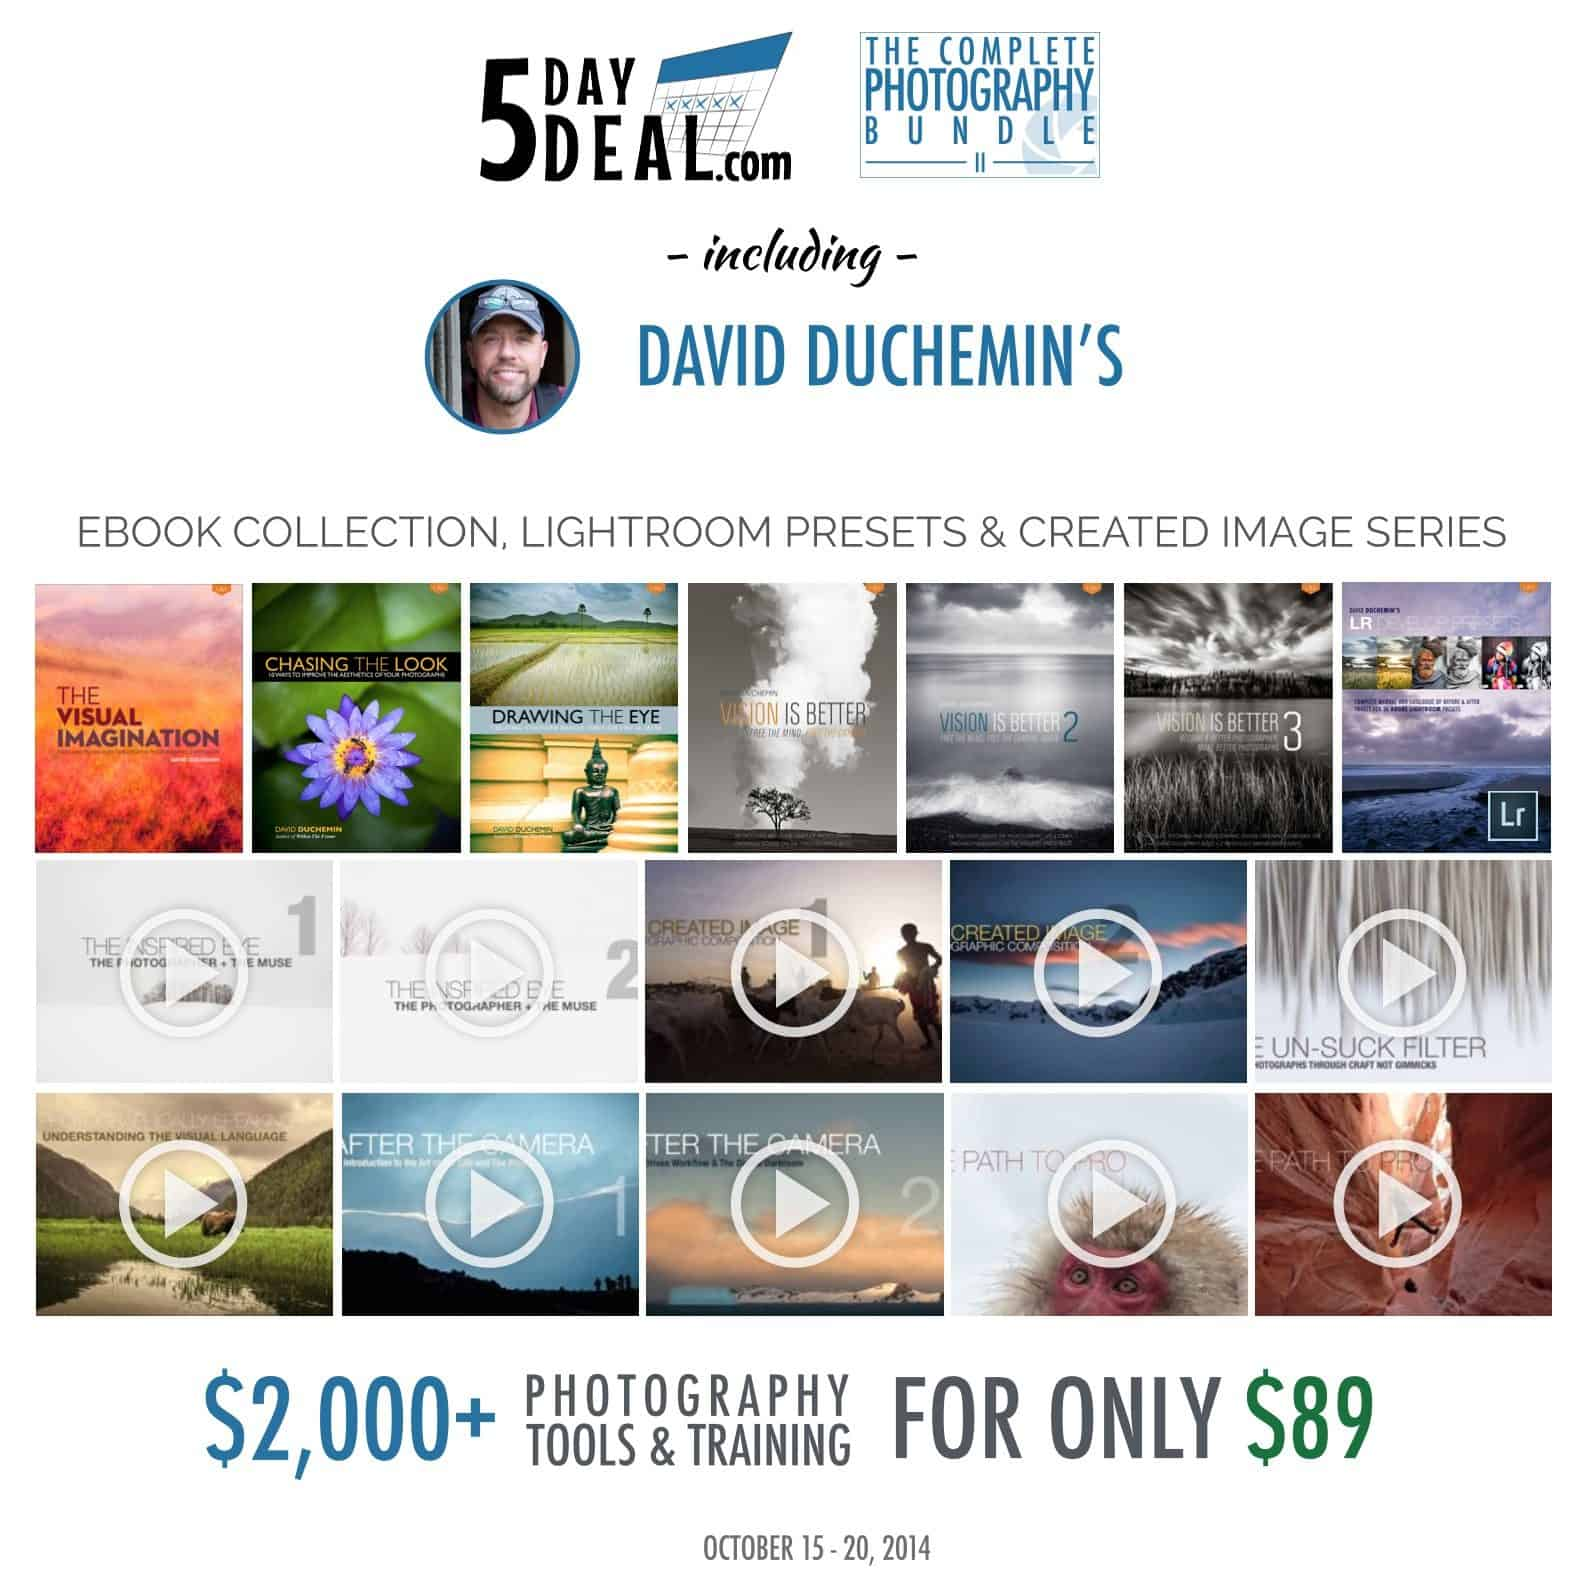 5DayDeal-David-DuChemin-Feature